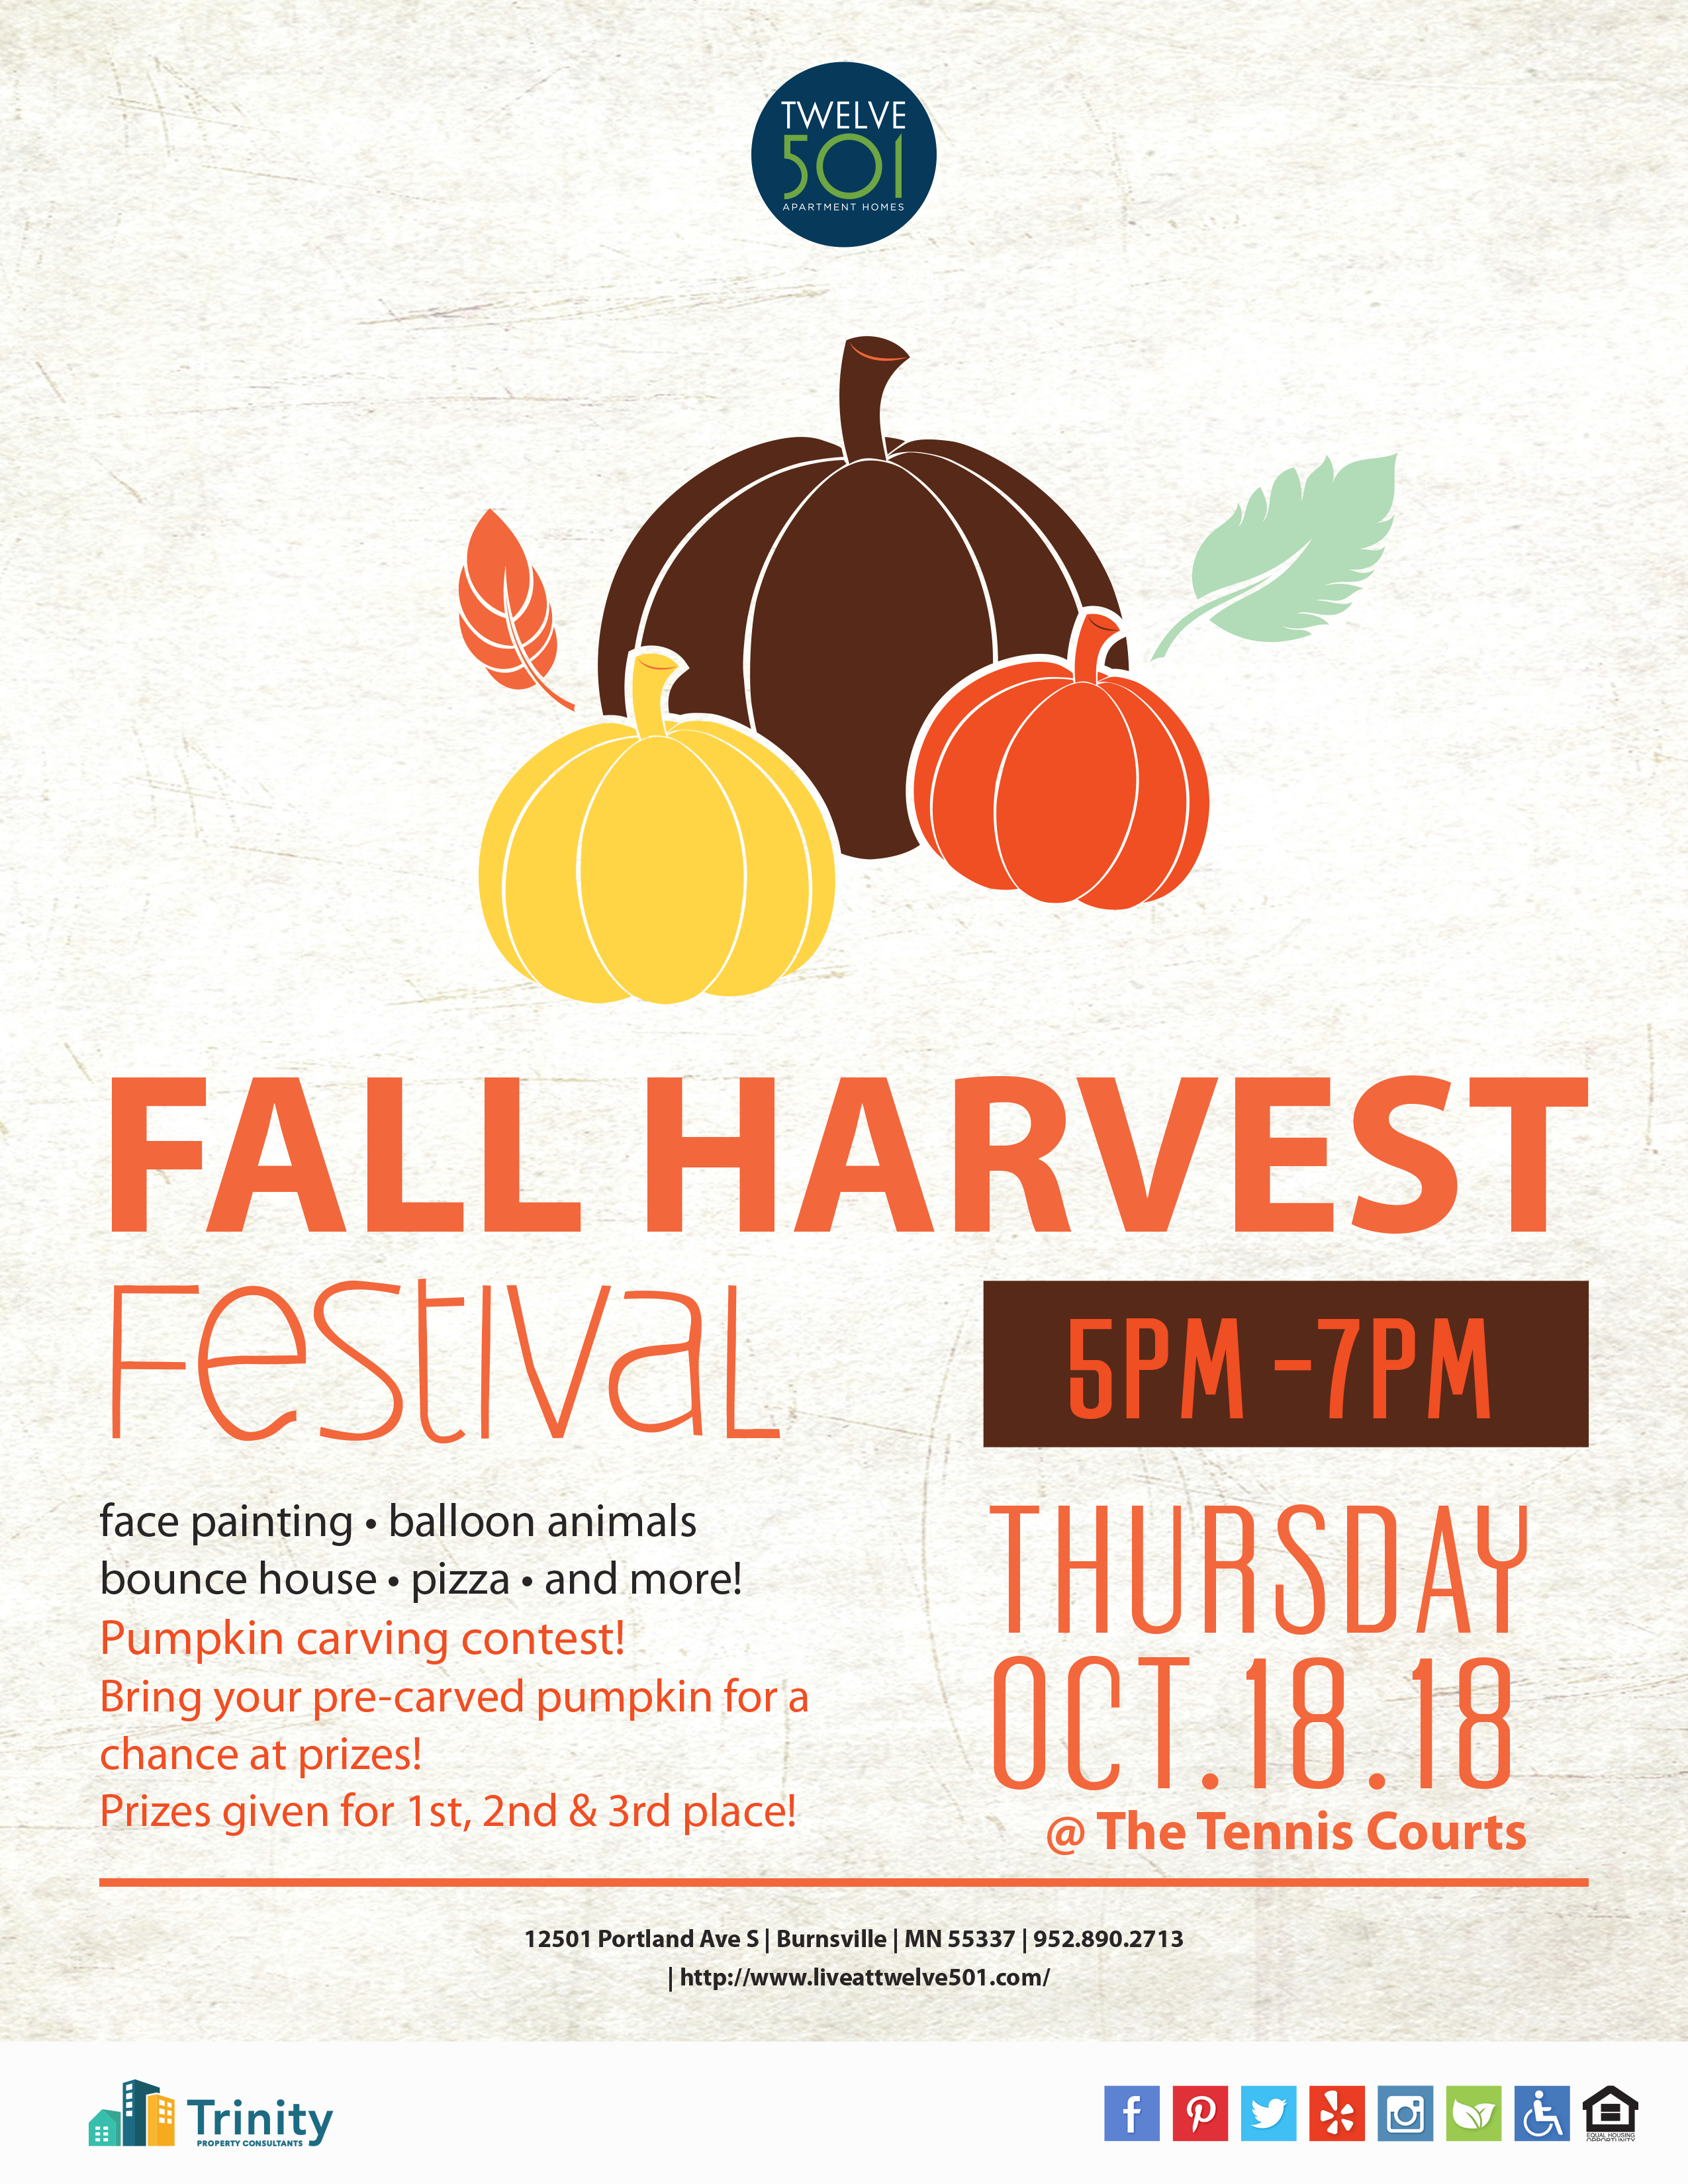 Mark Your Calendars And Get Ready For The Fall Harvest Festival We Ll Have Face Painting Balloon Animals And Mor Balloon Animals Burnsville Harvest Festival